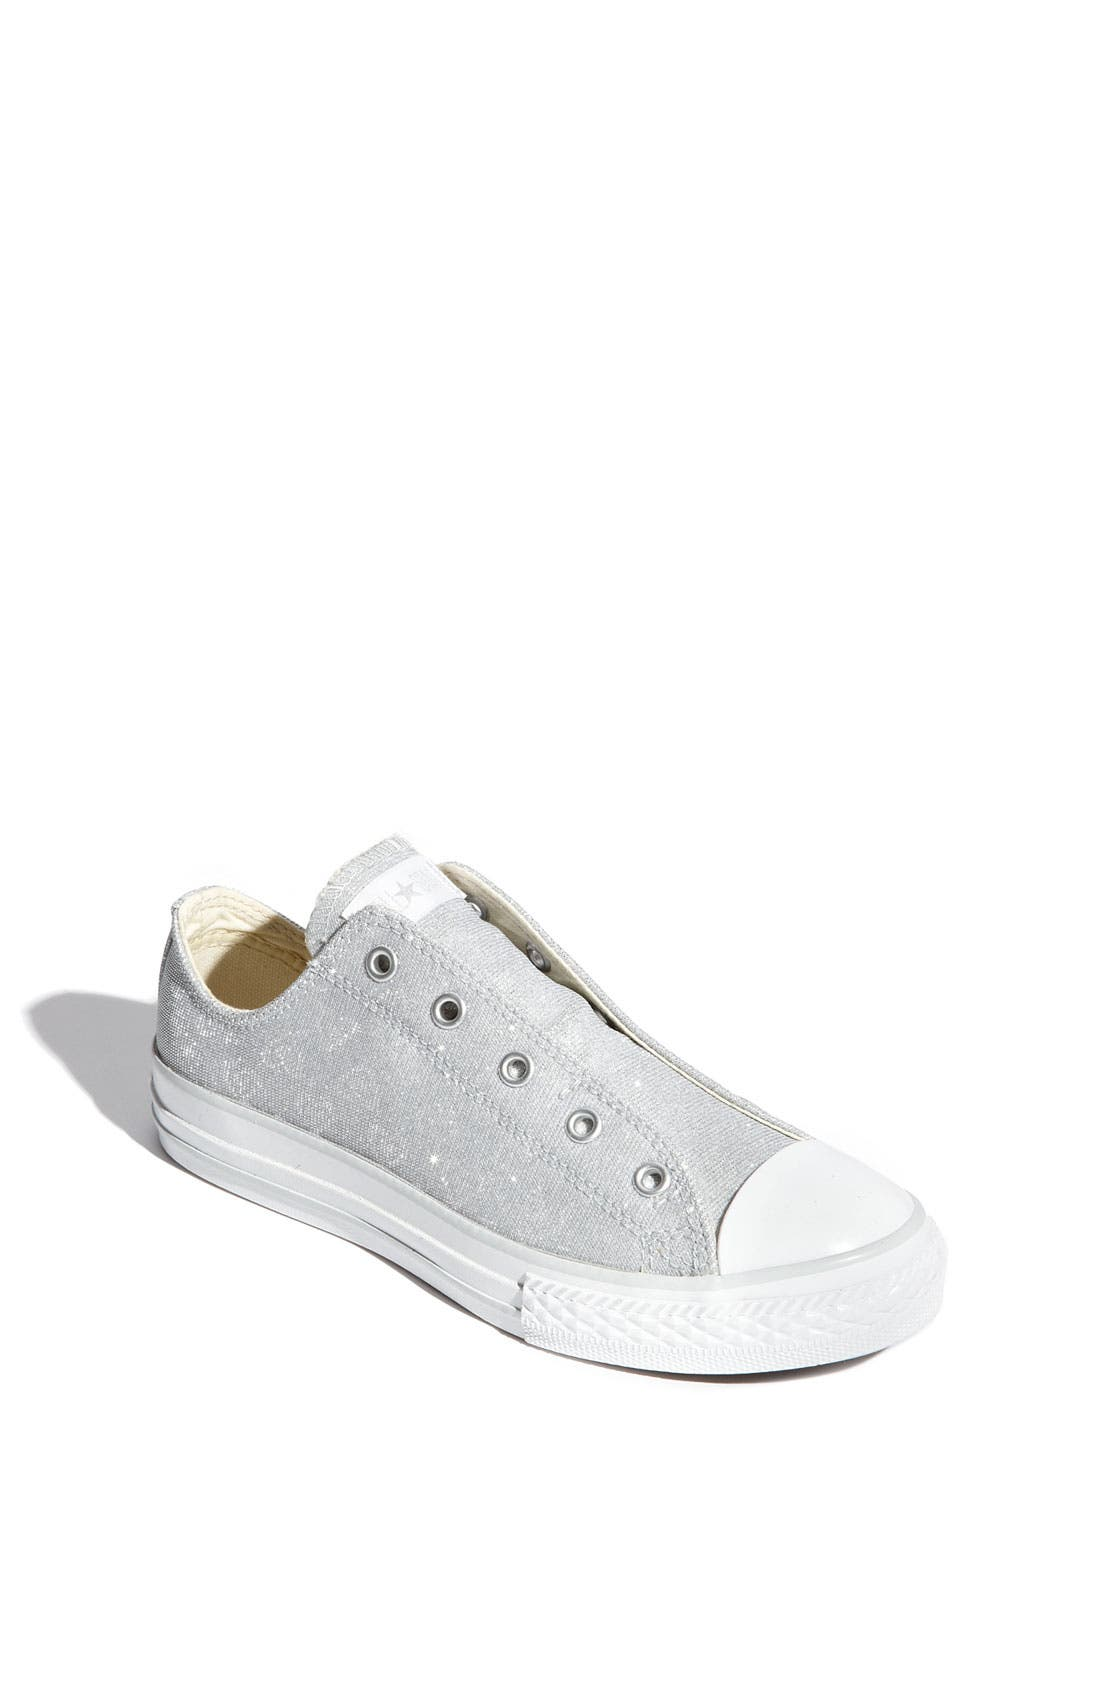 CONVERSE Chuck Taylor<sup>®</sup> 'Holographic Hearts' Slip-On Sneaker, Main, color, 040